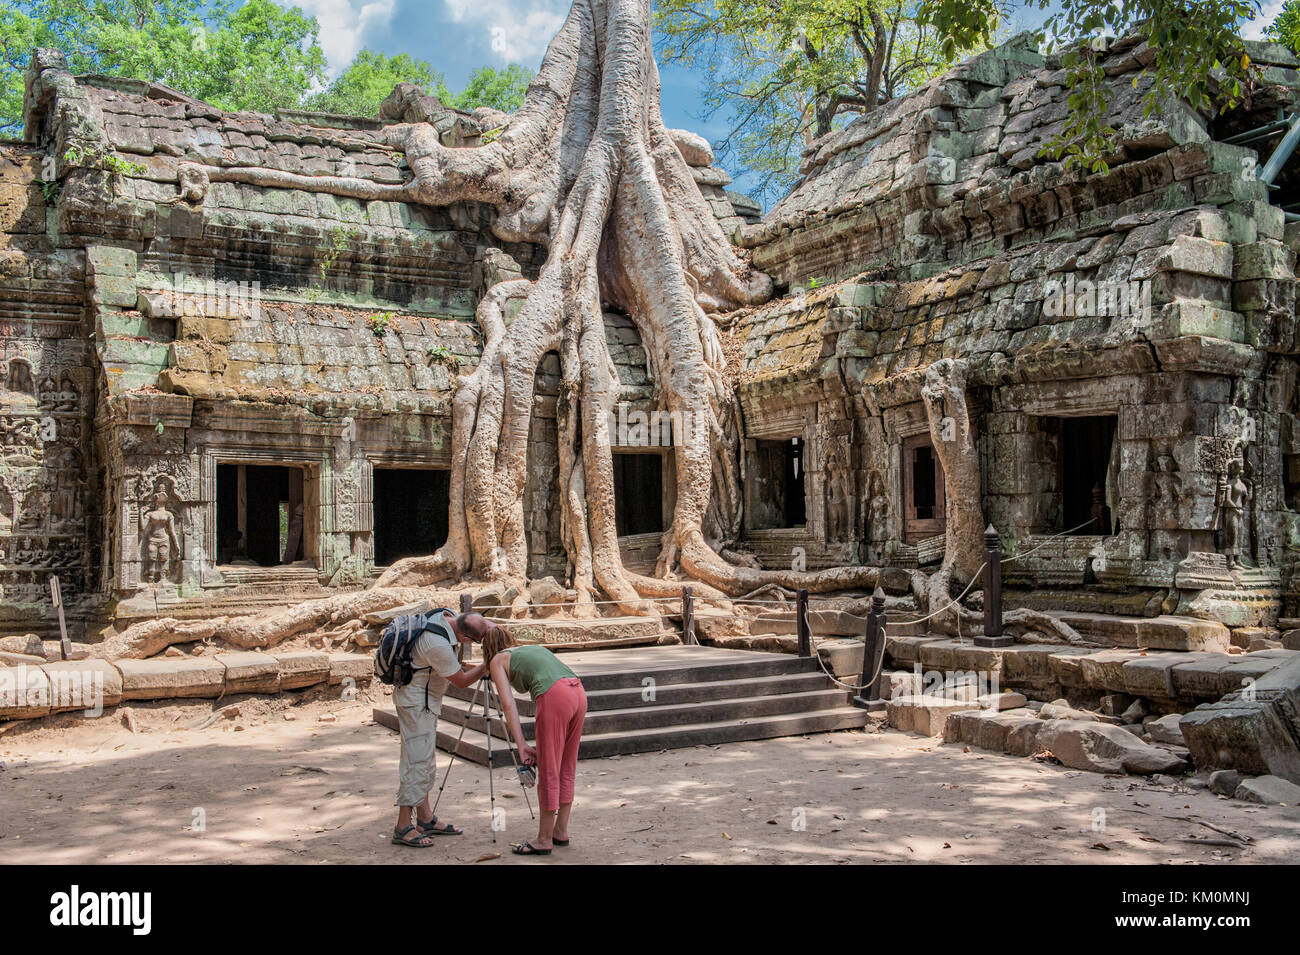 Tourists posing at Ta Prohm in Siem Reap. Built in 12-13th century Ta Prohm temple was later the location for the - Stock Image